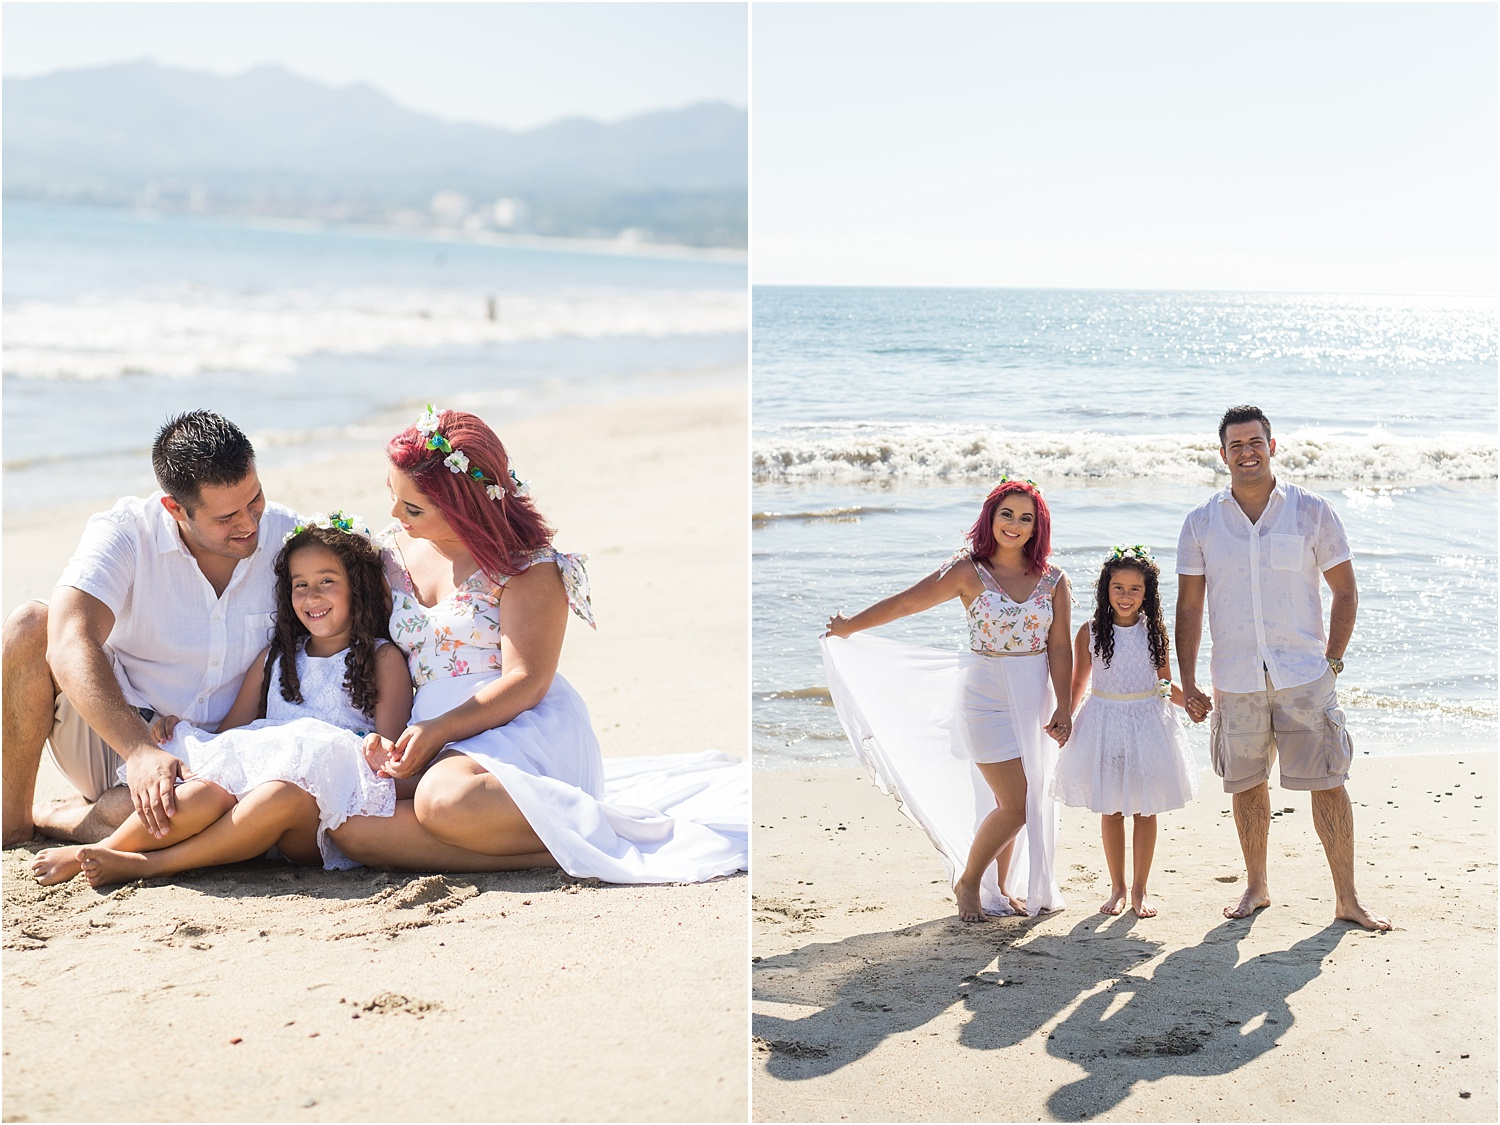 How to do Portrait Photography in Bright Midday Sun - family on the beach